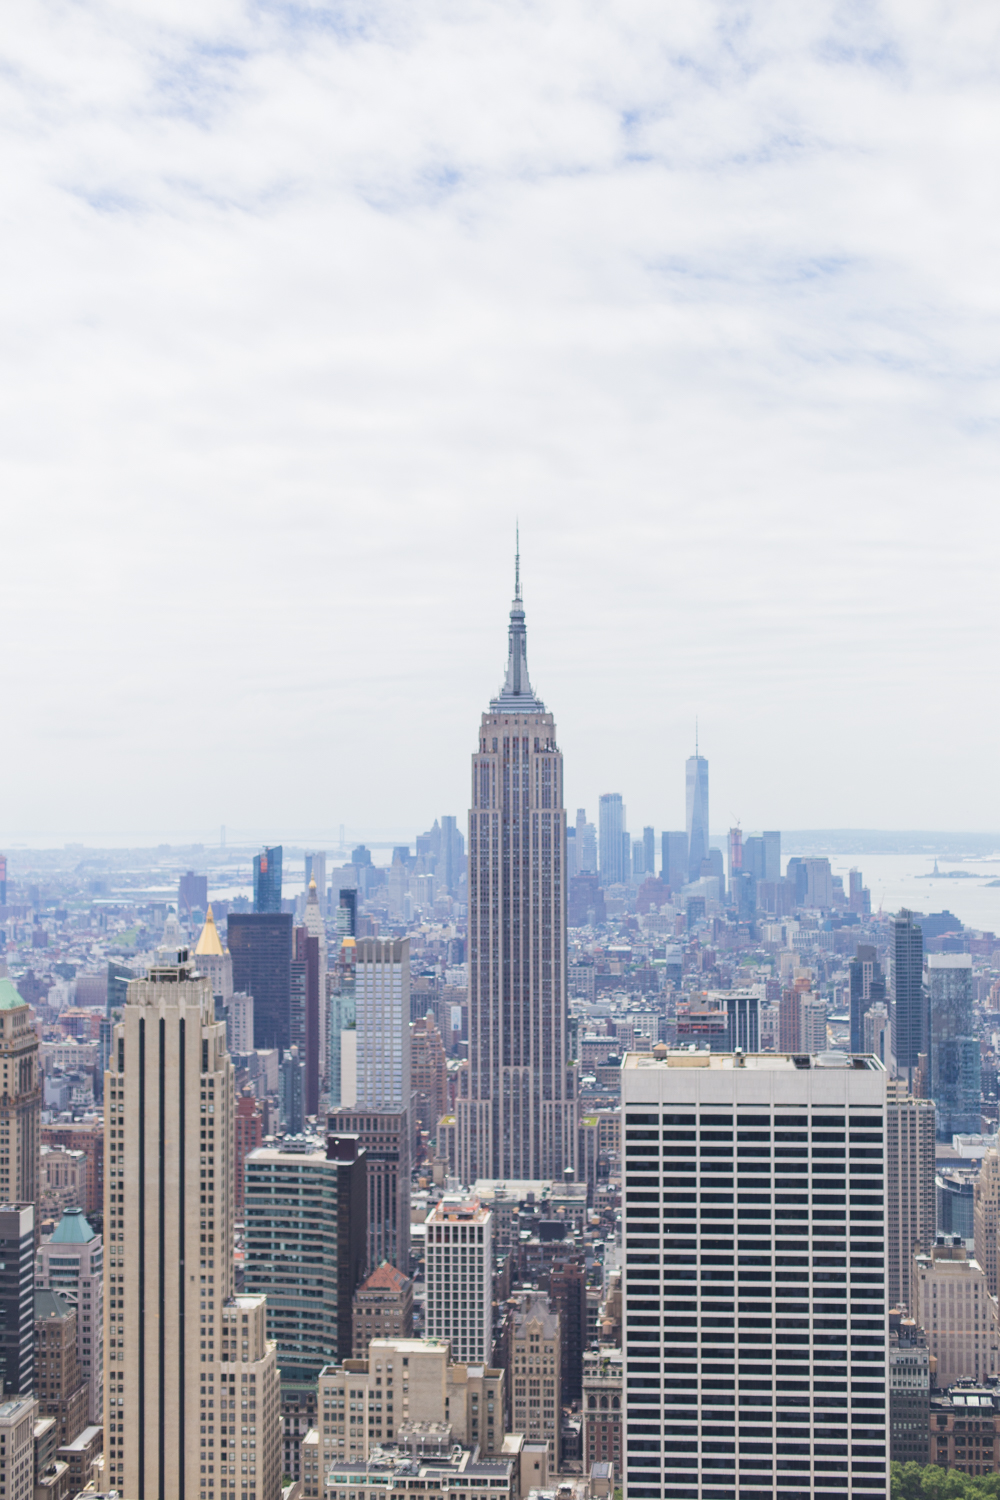 Visiting Top Of The Rock - First time visiting New York? I'm sharing some practical tips, including where to stay, what to see and how to get around.